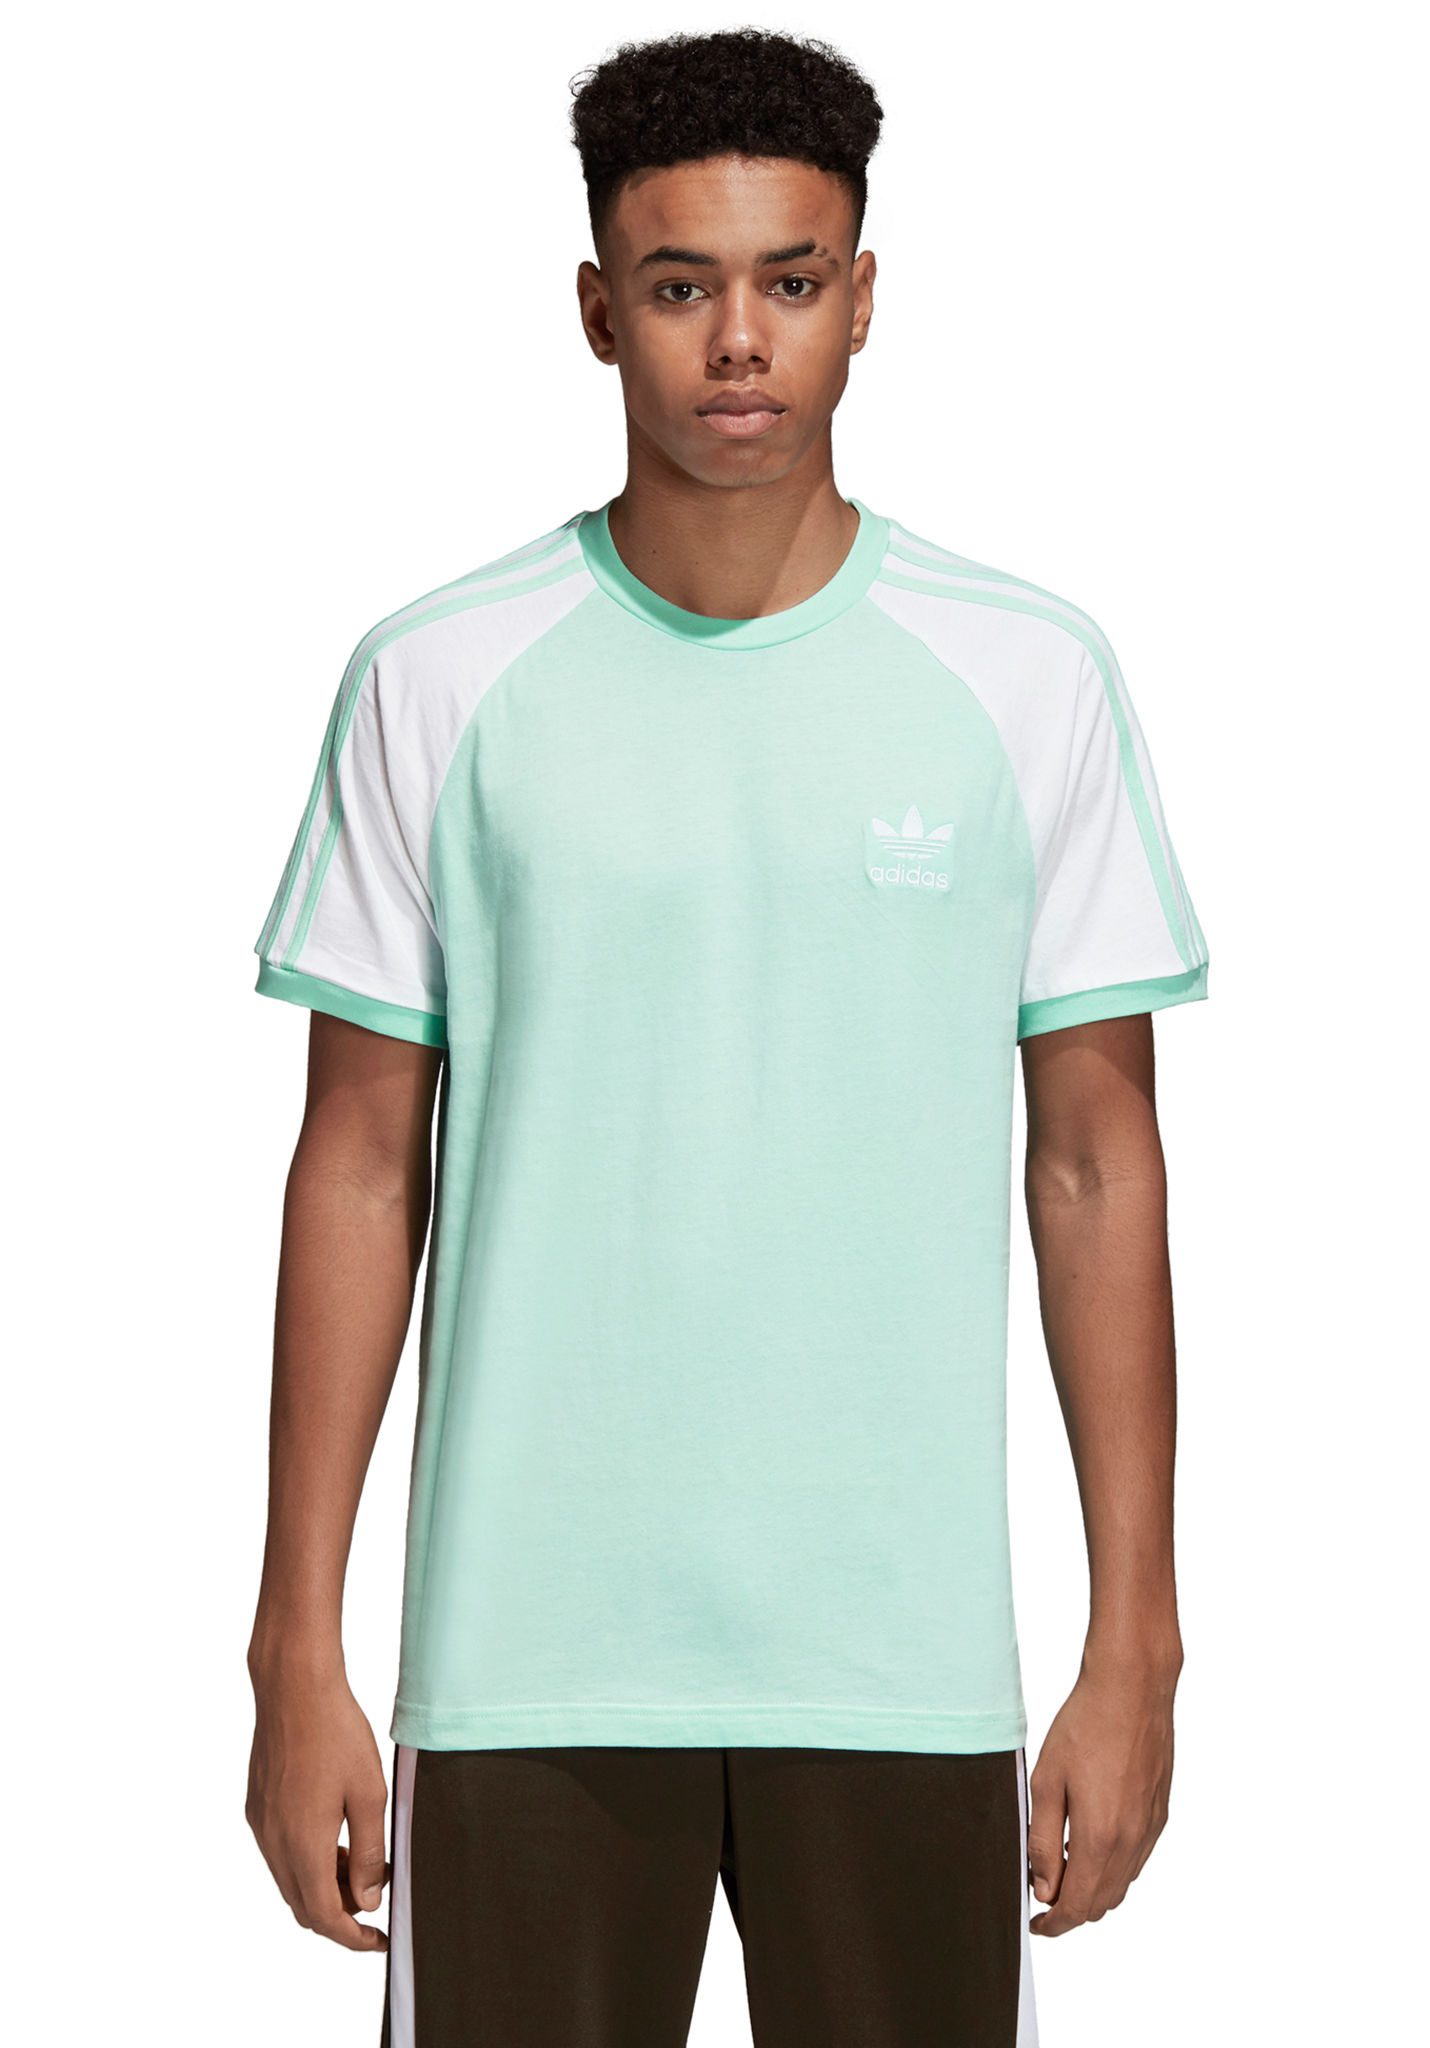 ADIDAS ORIGINALS 3-Stripes - T-shirt voor Heren - Groen